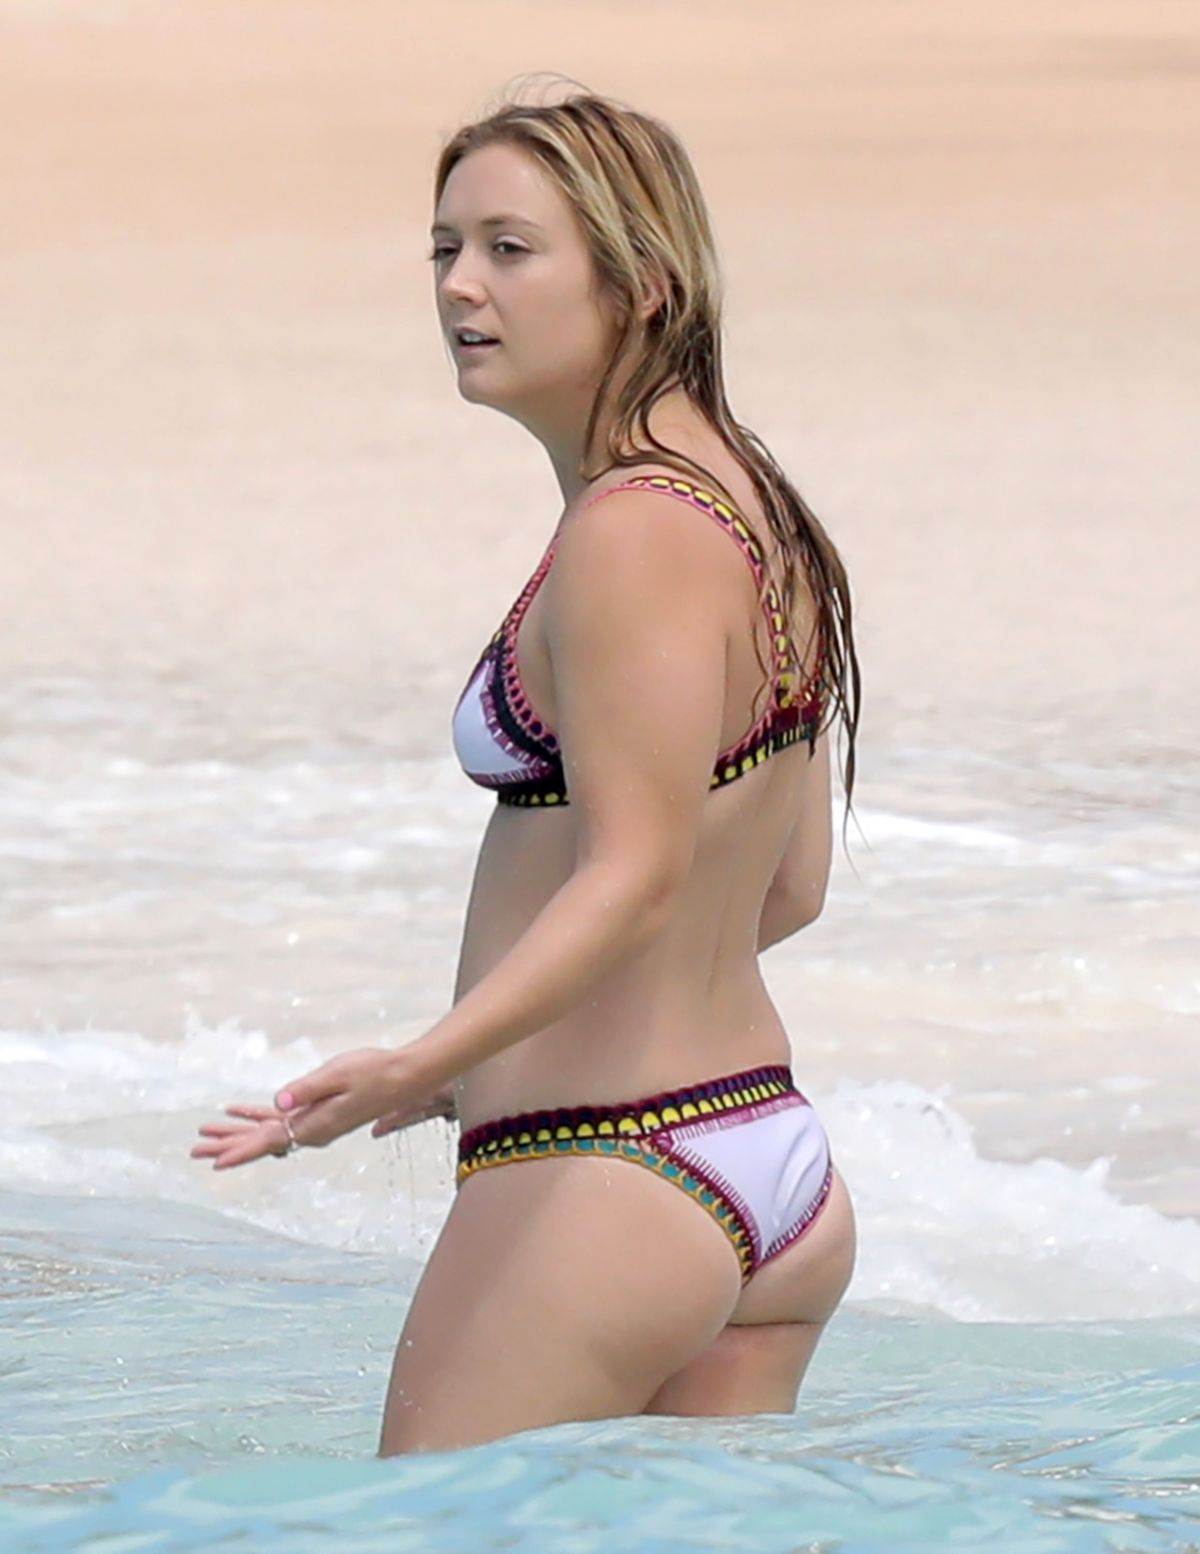 Bikini Billie Lourd nude photos 2019